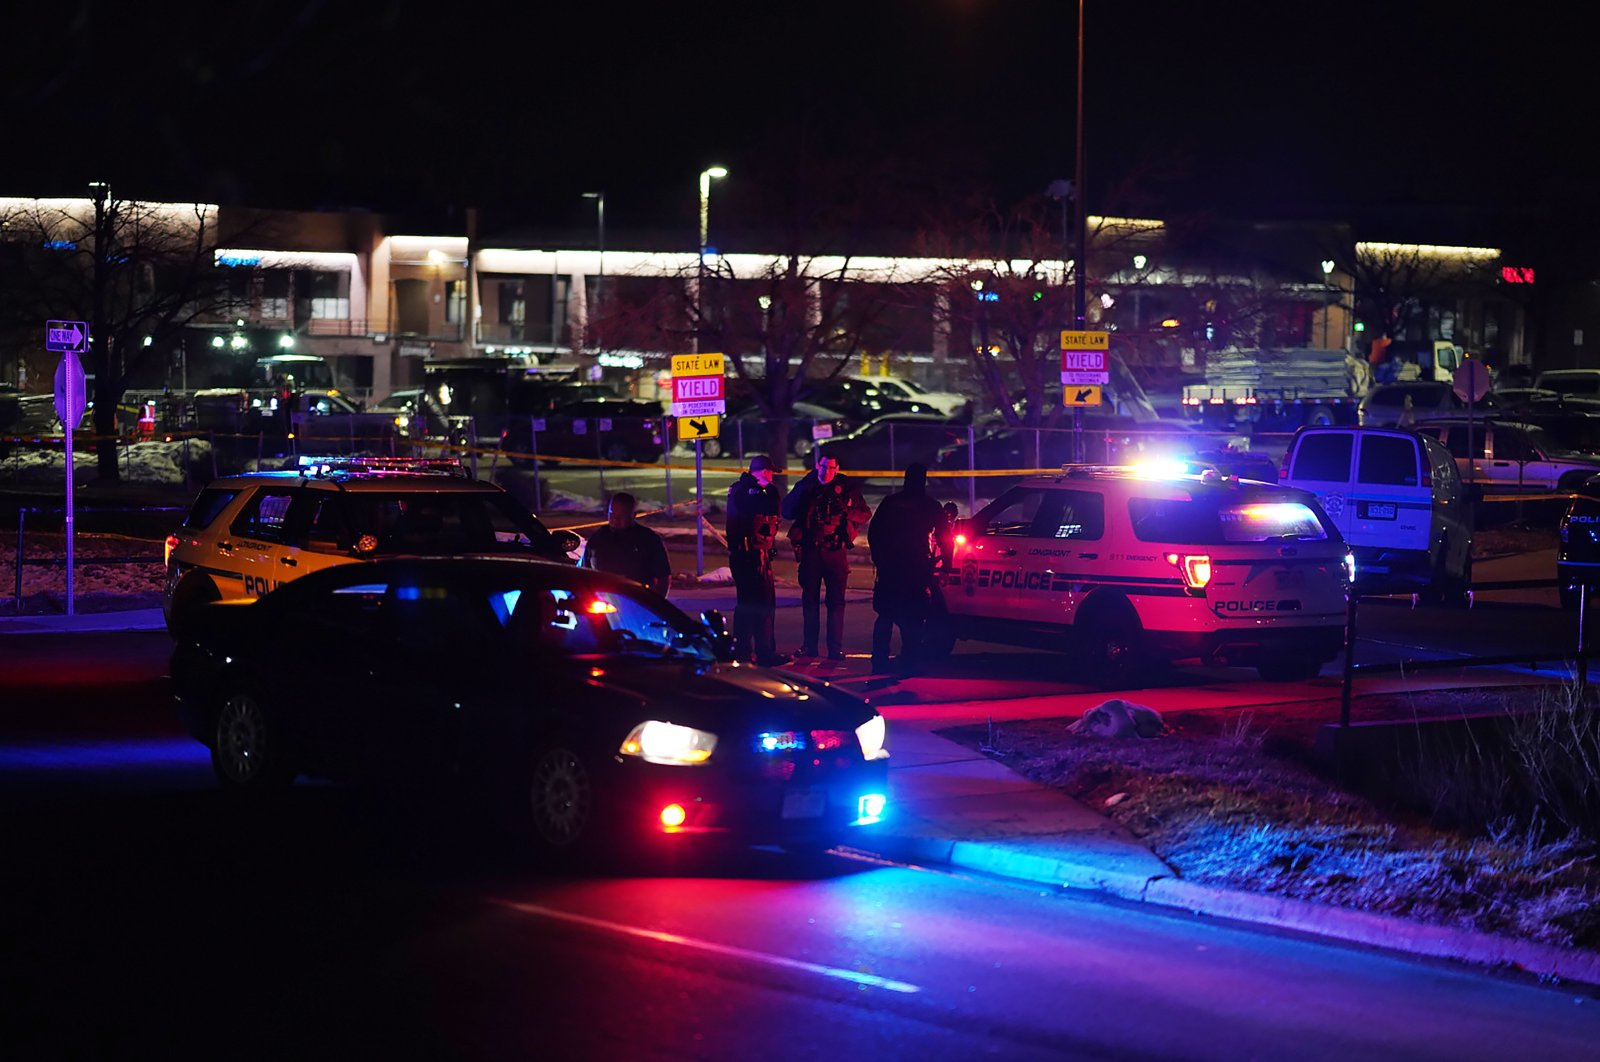 Police and officials investigate the scene of a mass shooting at the King Soopers supermarket in Boulder, Colorado, U.S., March 22, 2021. (EPA Photo)